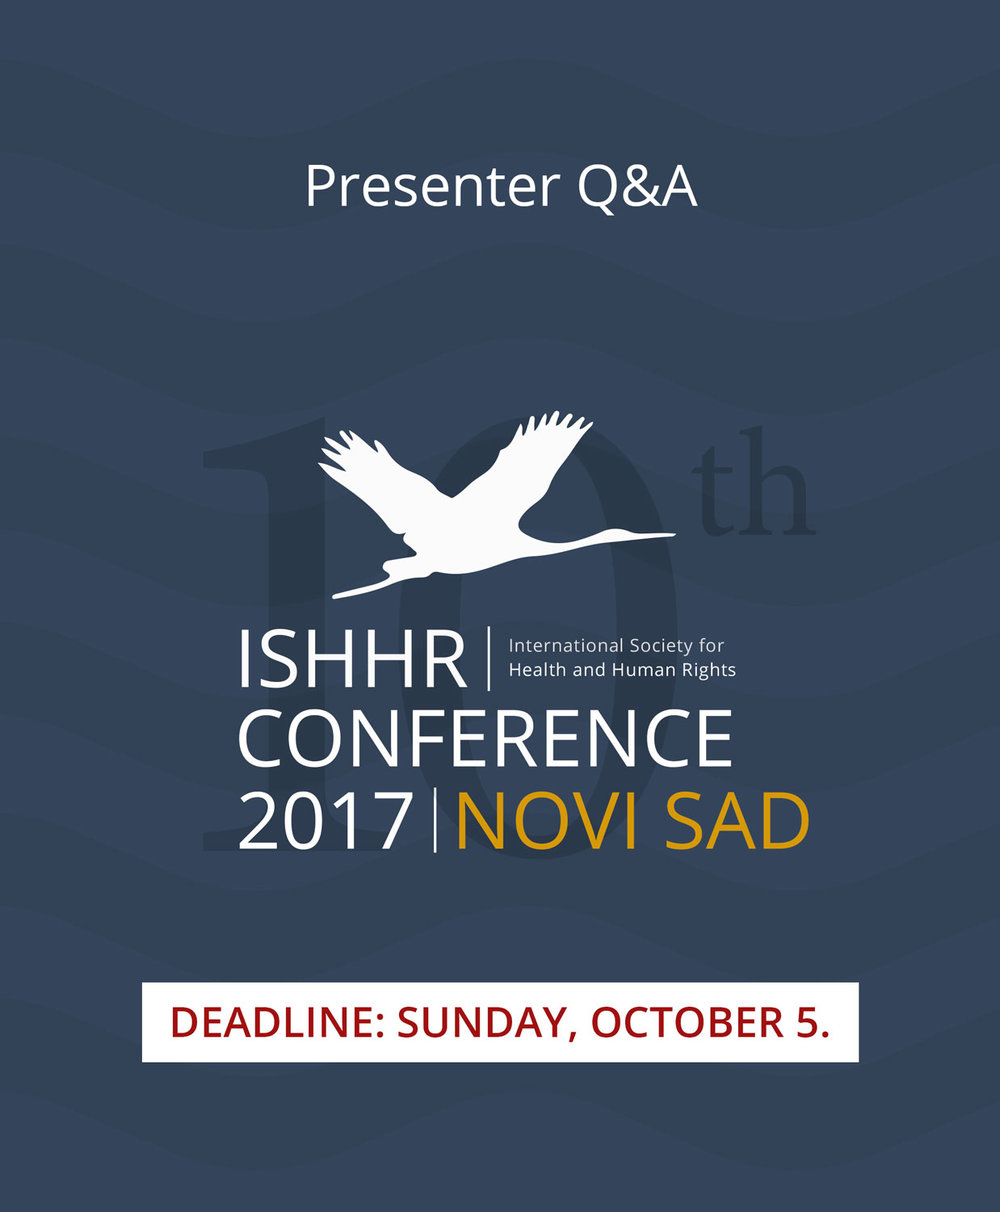 ISHHR-Presenter-Q&A.jpg